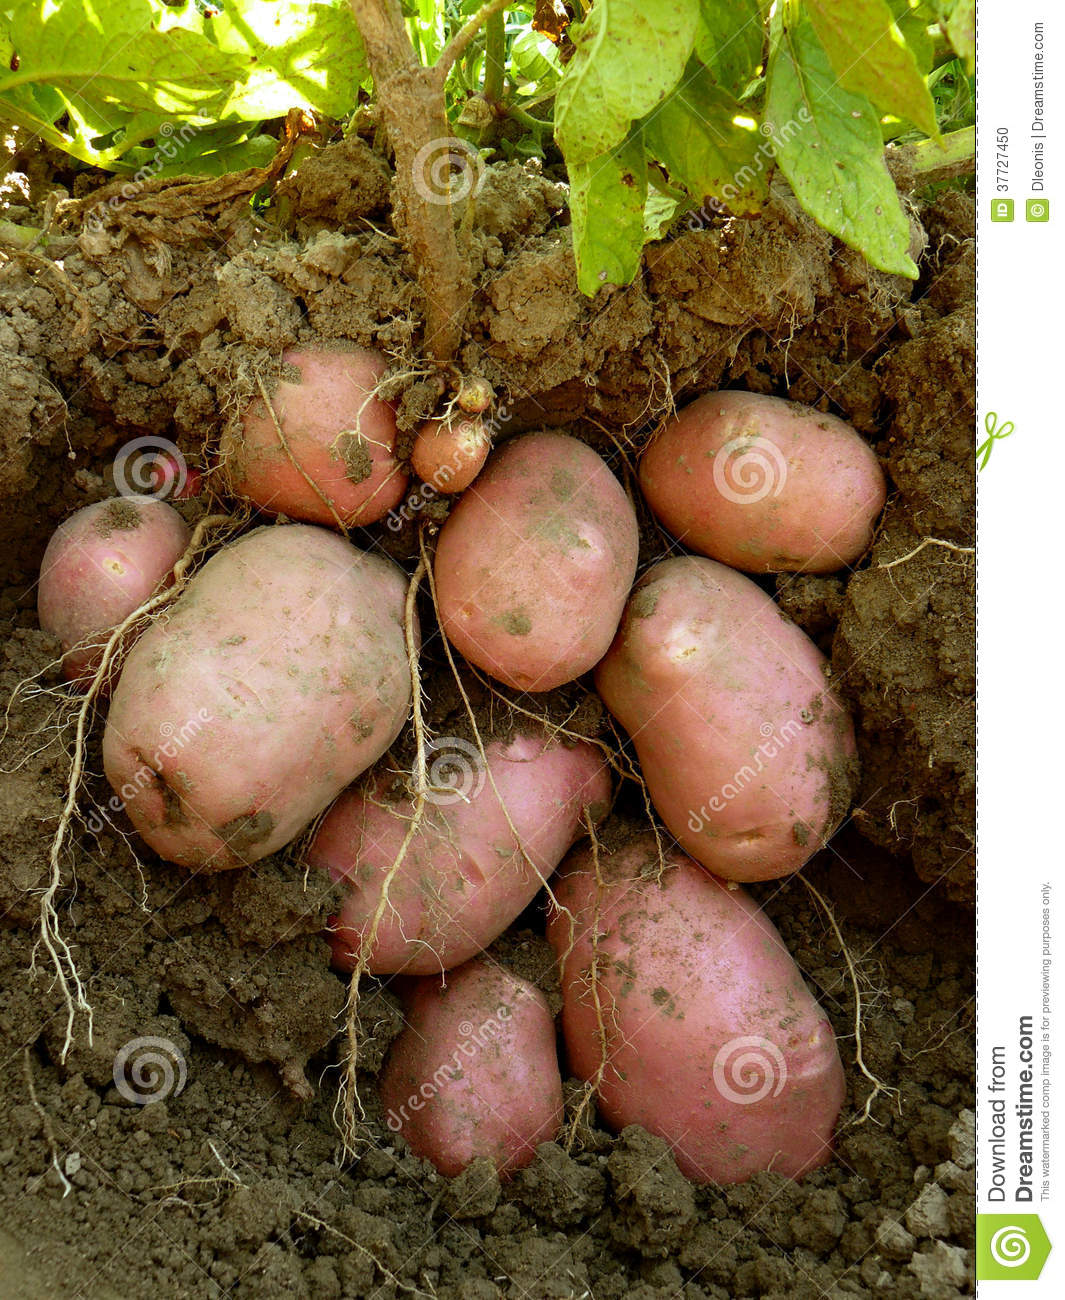 potato plant with tubers stock photo image 37727450. Black Bedroom Furniture Sets. Home Design Ideas